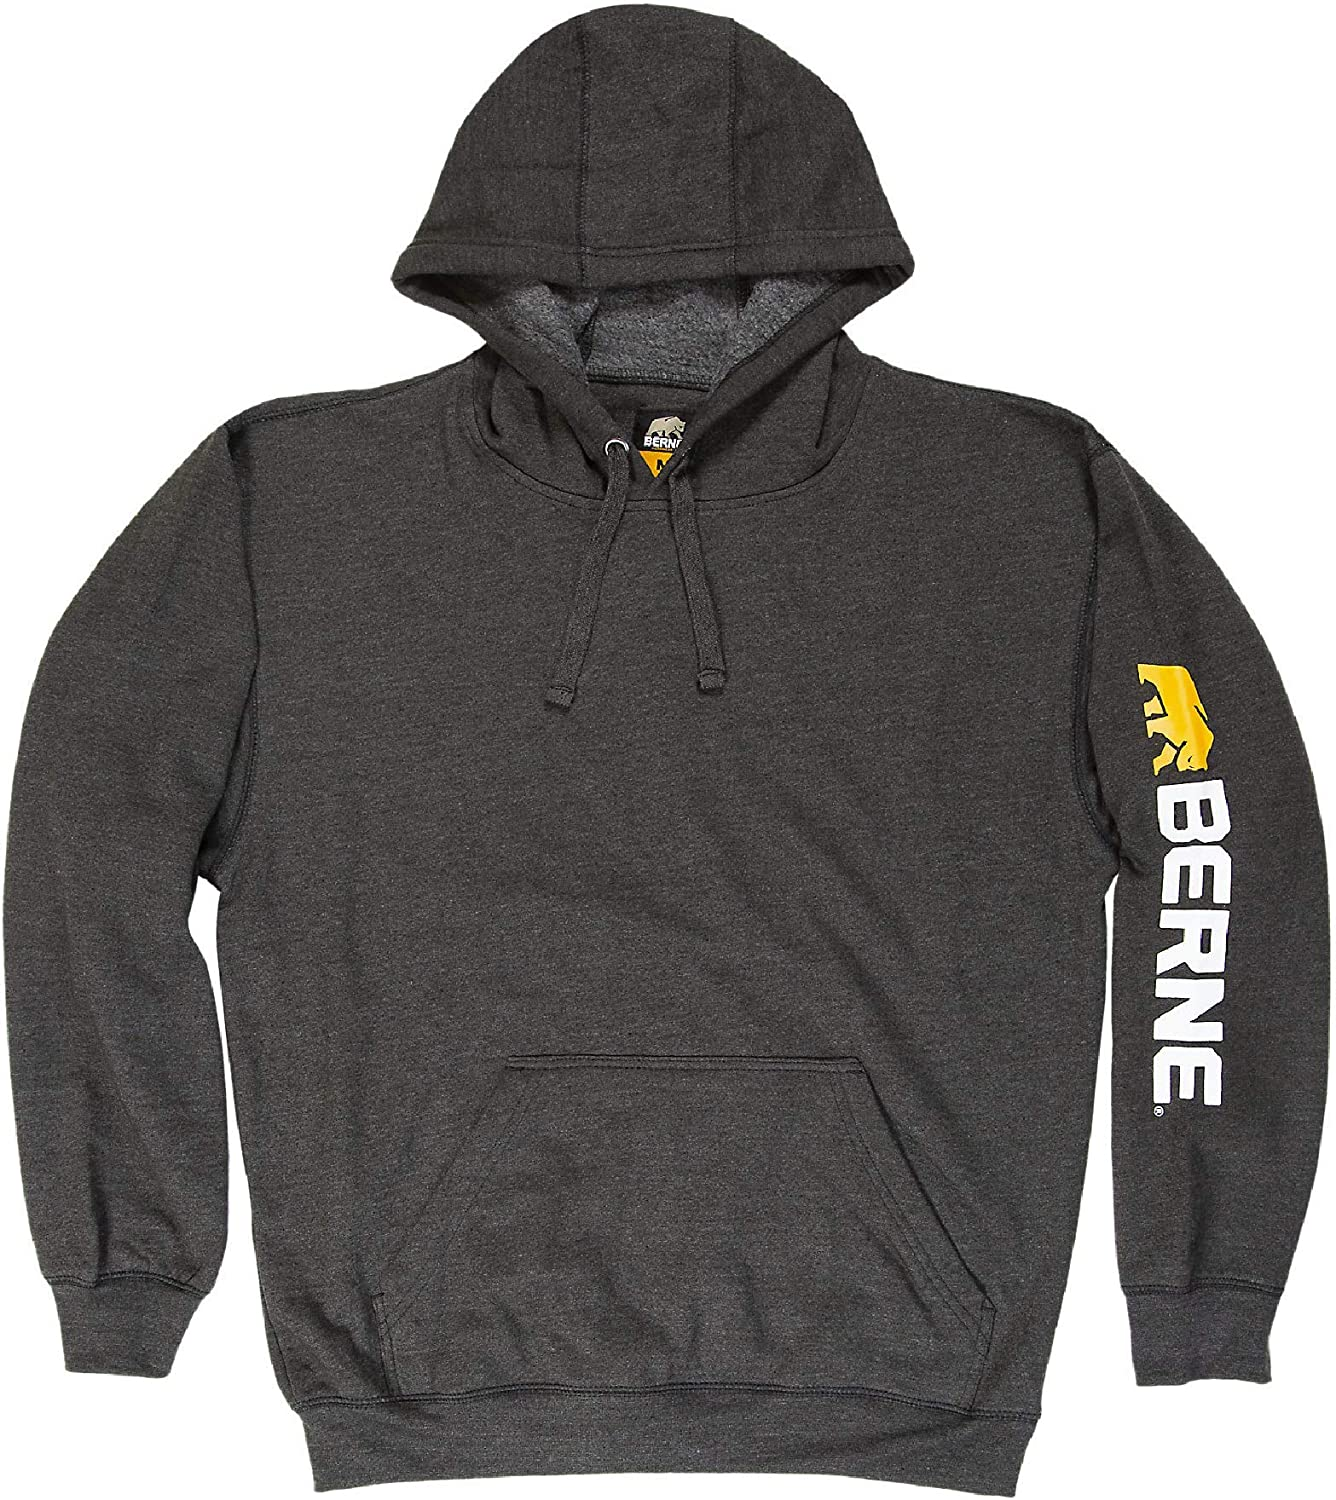 Berne Men's Signature Sleeve Hooded Pullover